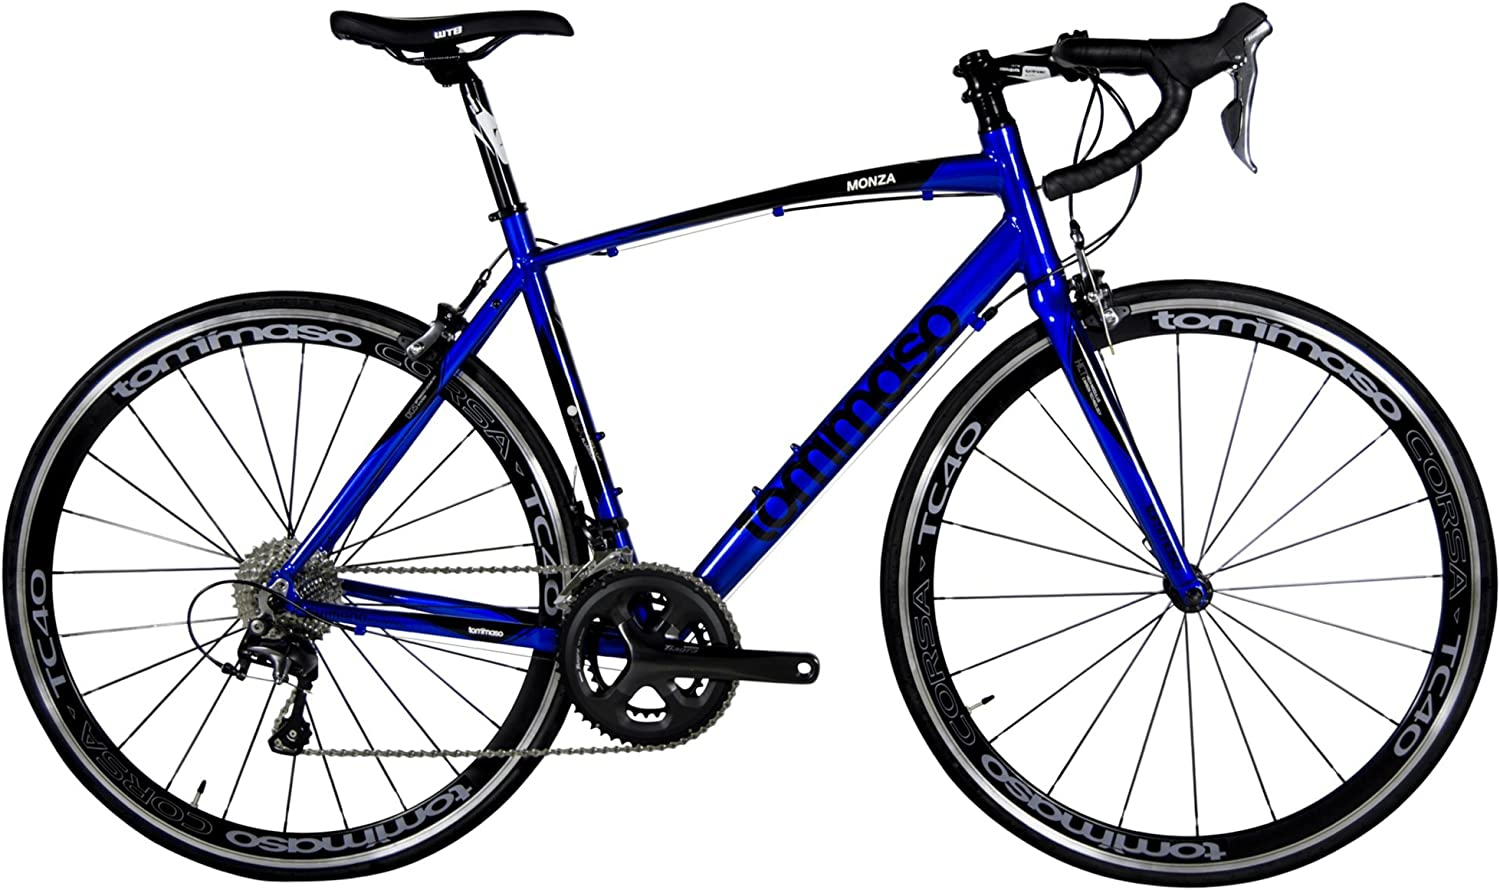 Best road bikes under 2000: Tommaso Monza Endurance Aluminum Road Bike